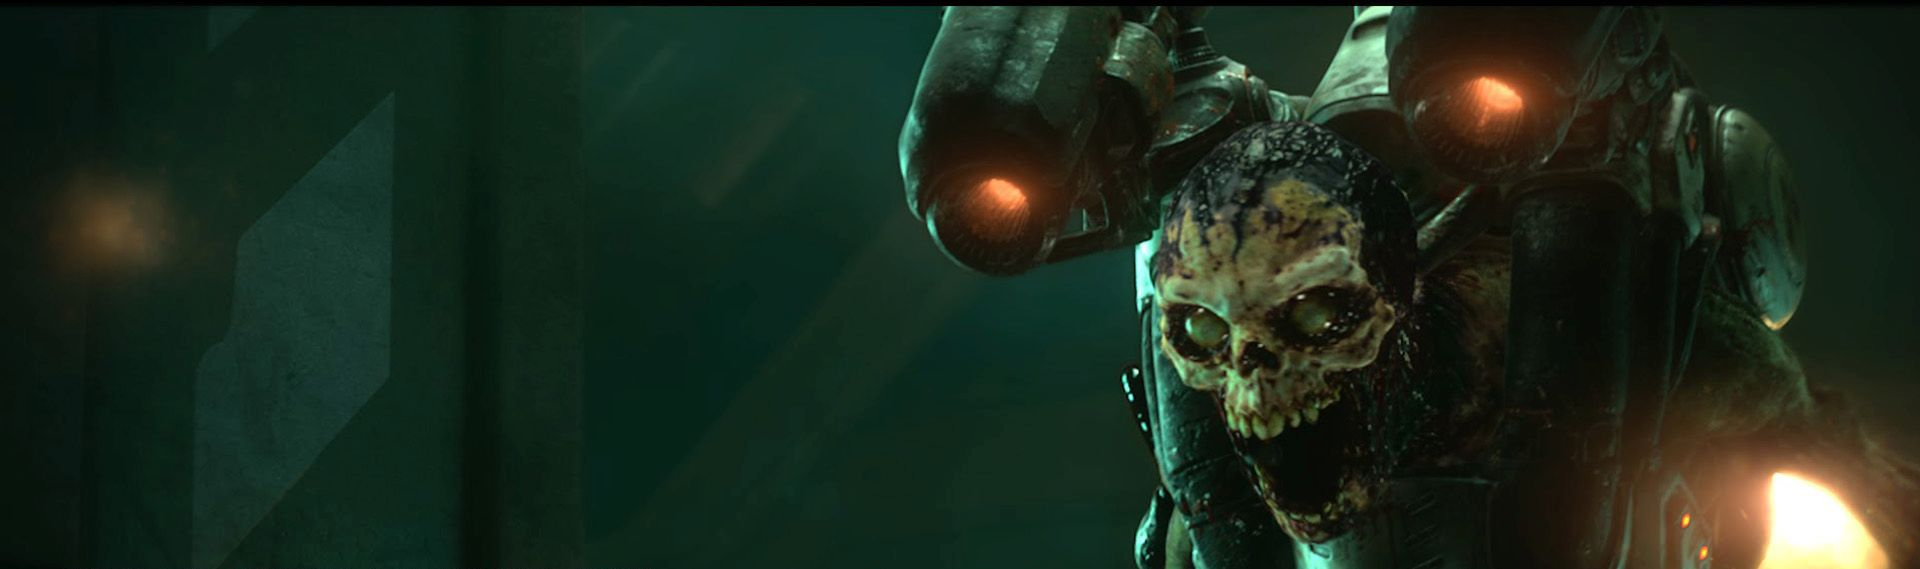 doom vfr pc patch download